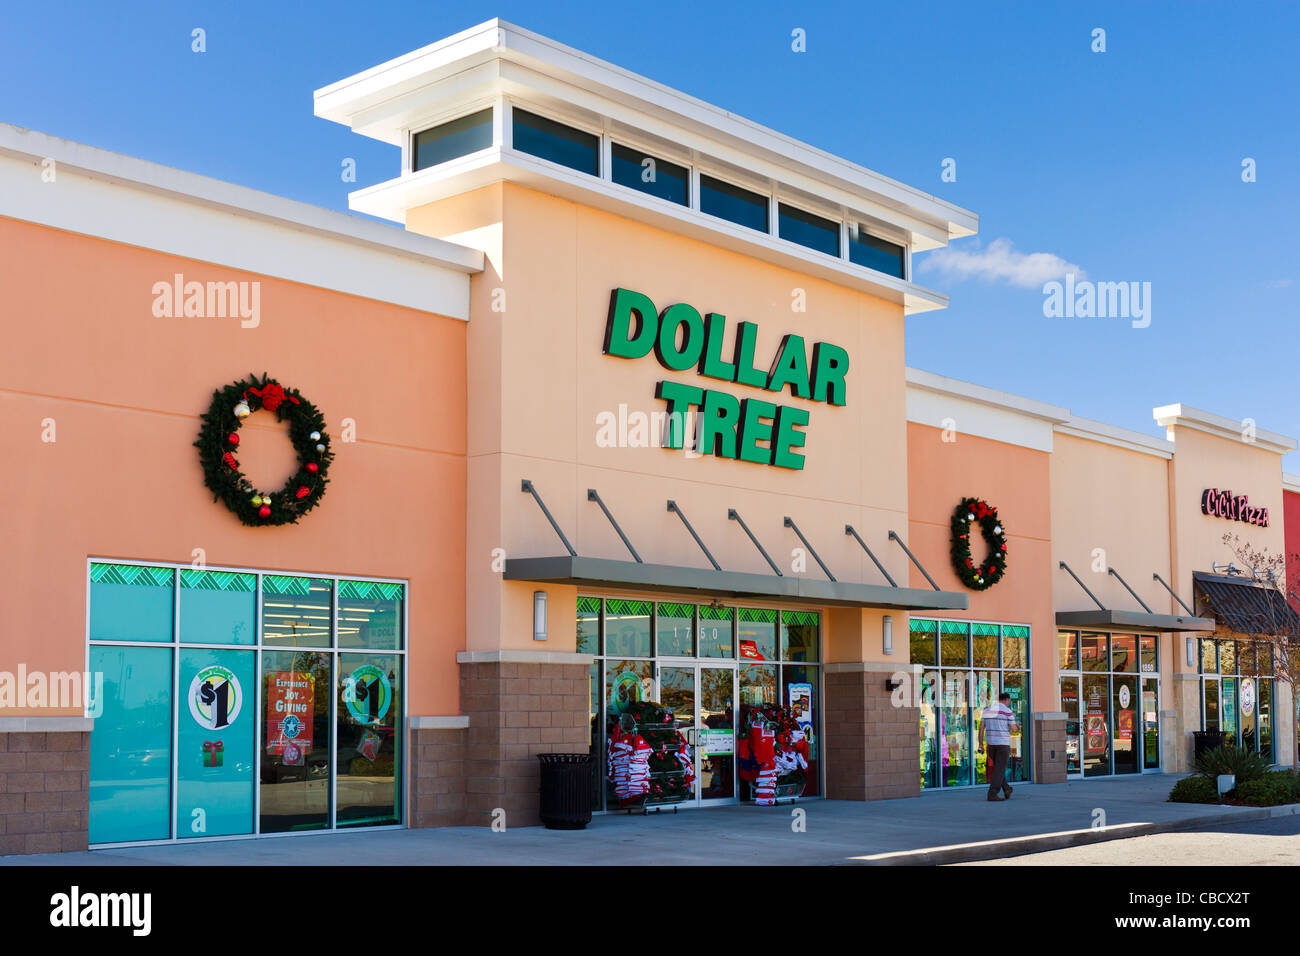 Dollar Tree discount store at Posner Park retail development, Davenport, Central Florida, USA - Stock Image